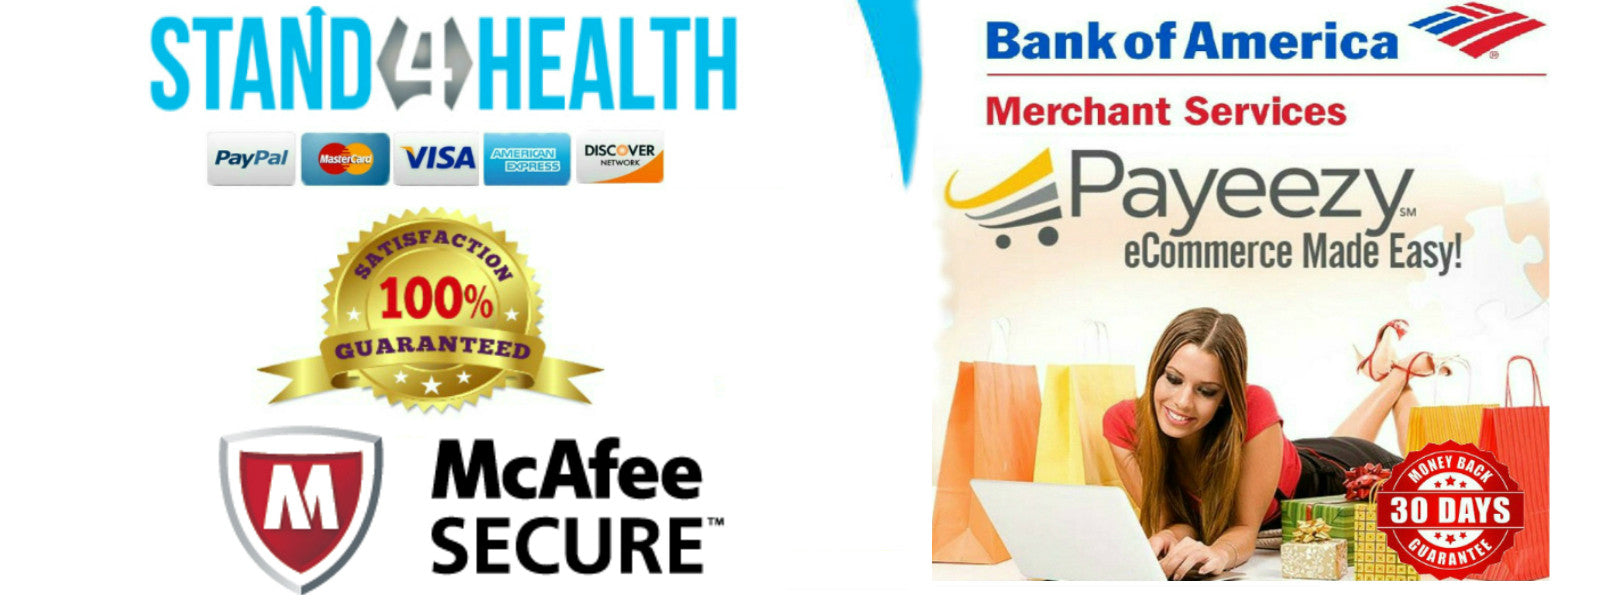 The stand 4health payment gateway partners _ Bank of America & the First Data powered Payeezy API gateway